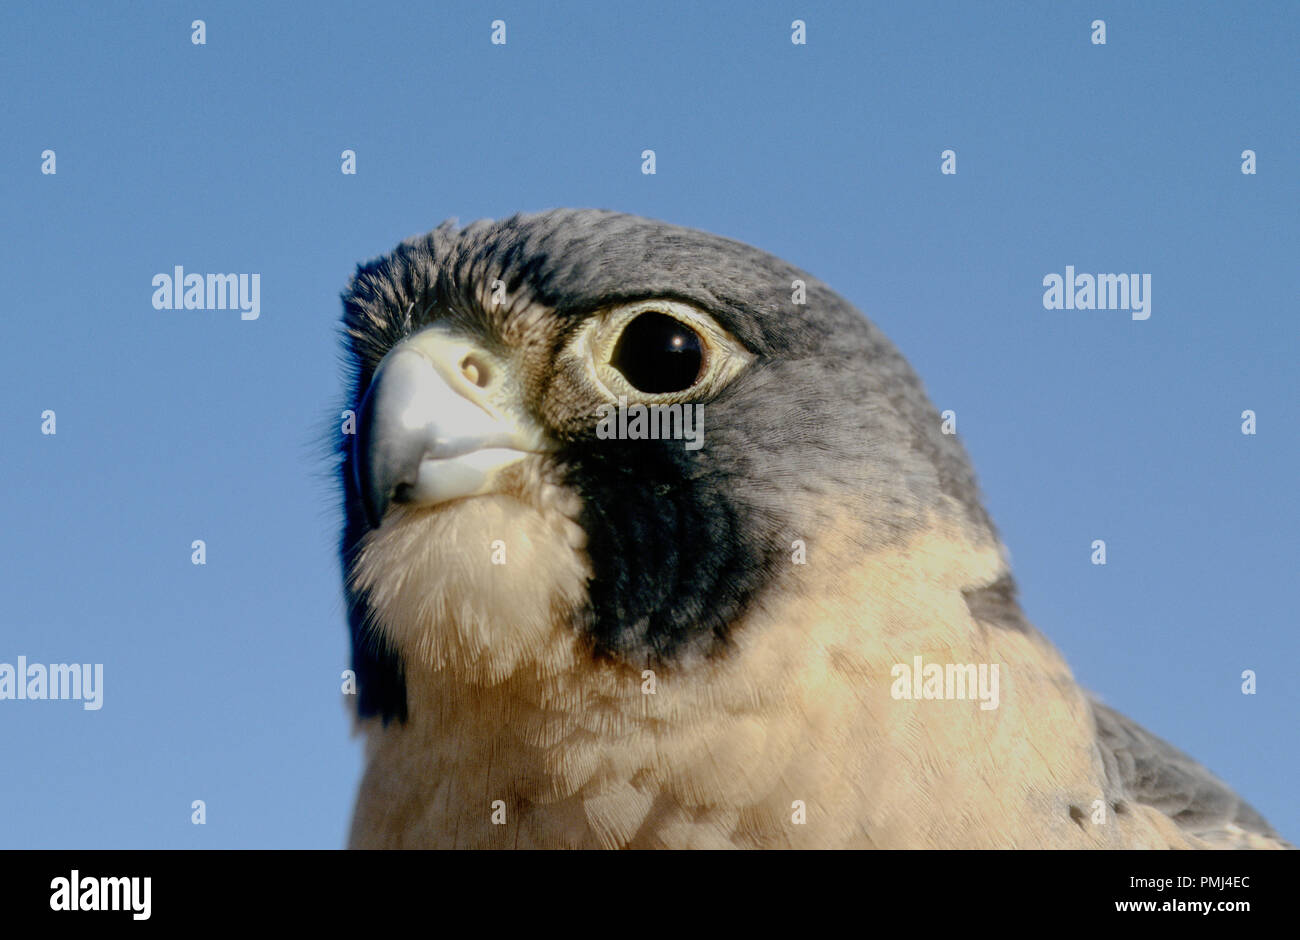 Peregrine falcon (captive; Falco peregrinus) at the World Center for Birds of Prey, Boise, Idaho USA Stock Photo